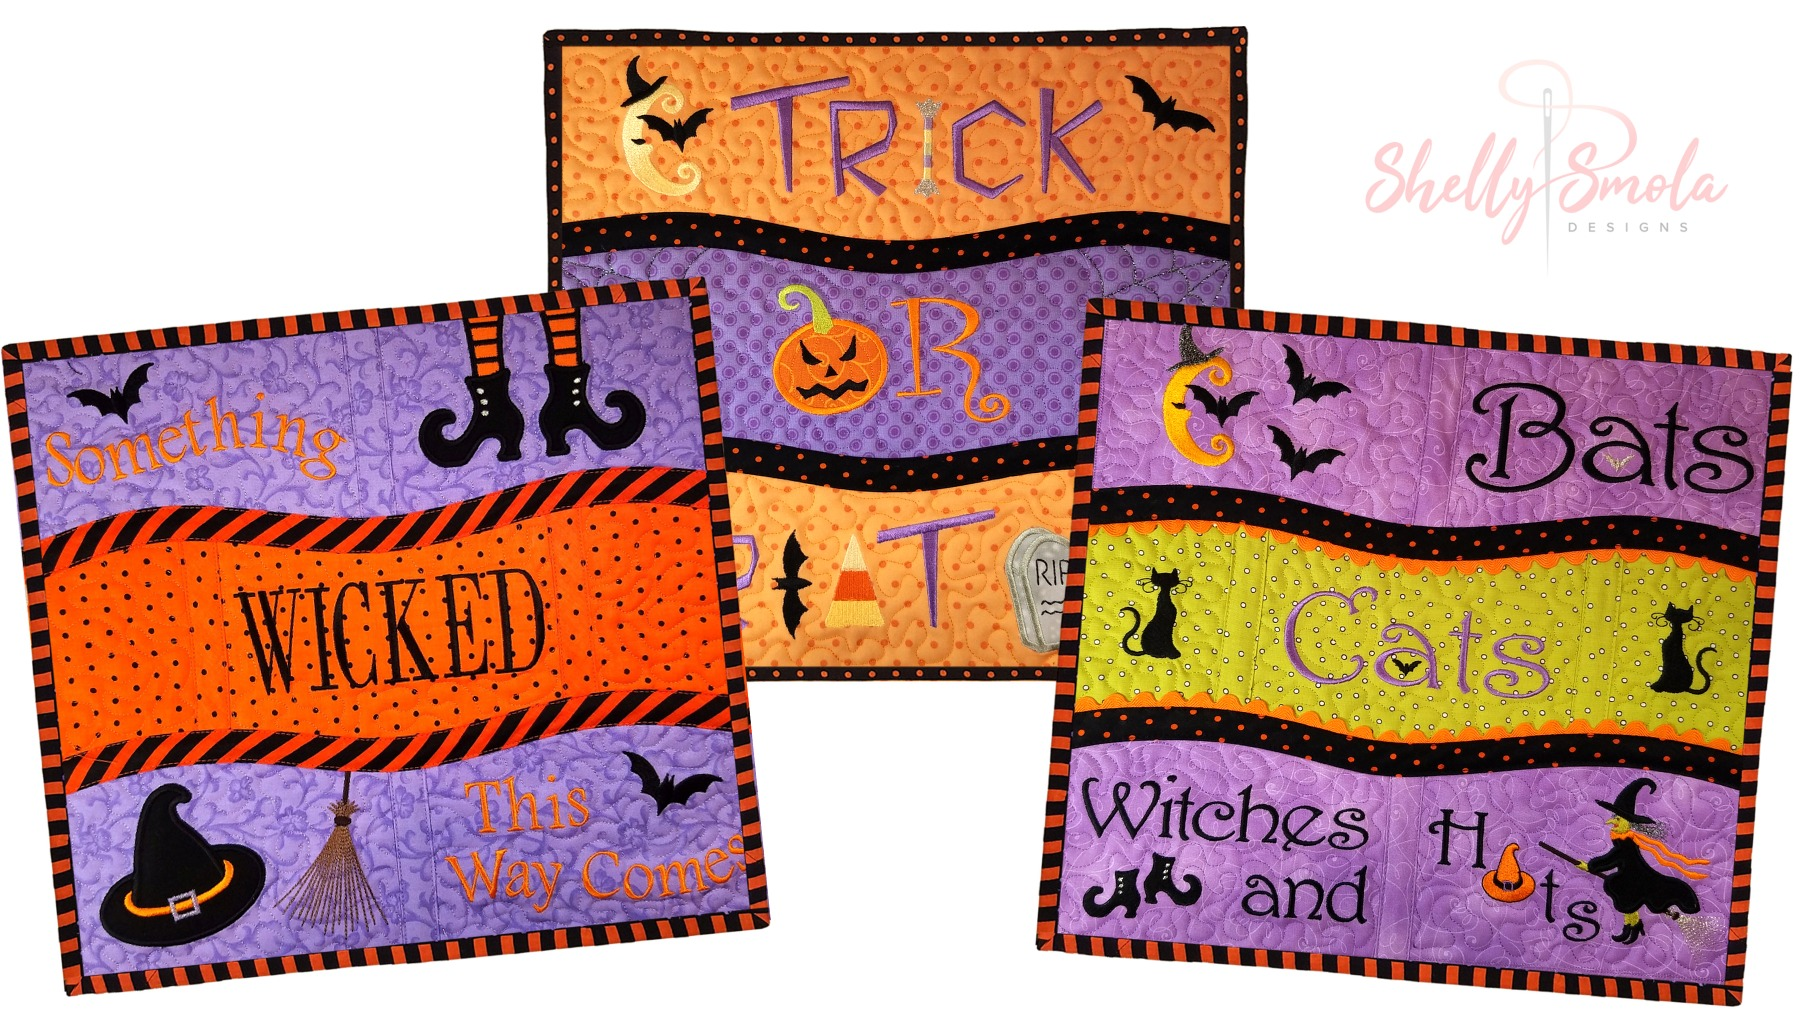 Get Wicked Placemats by Shelly Smola